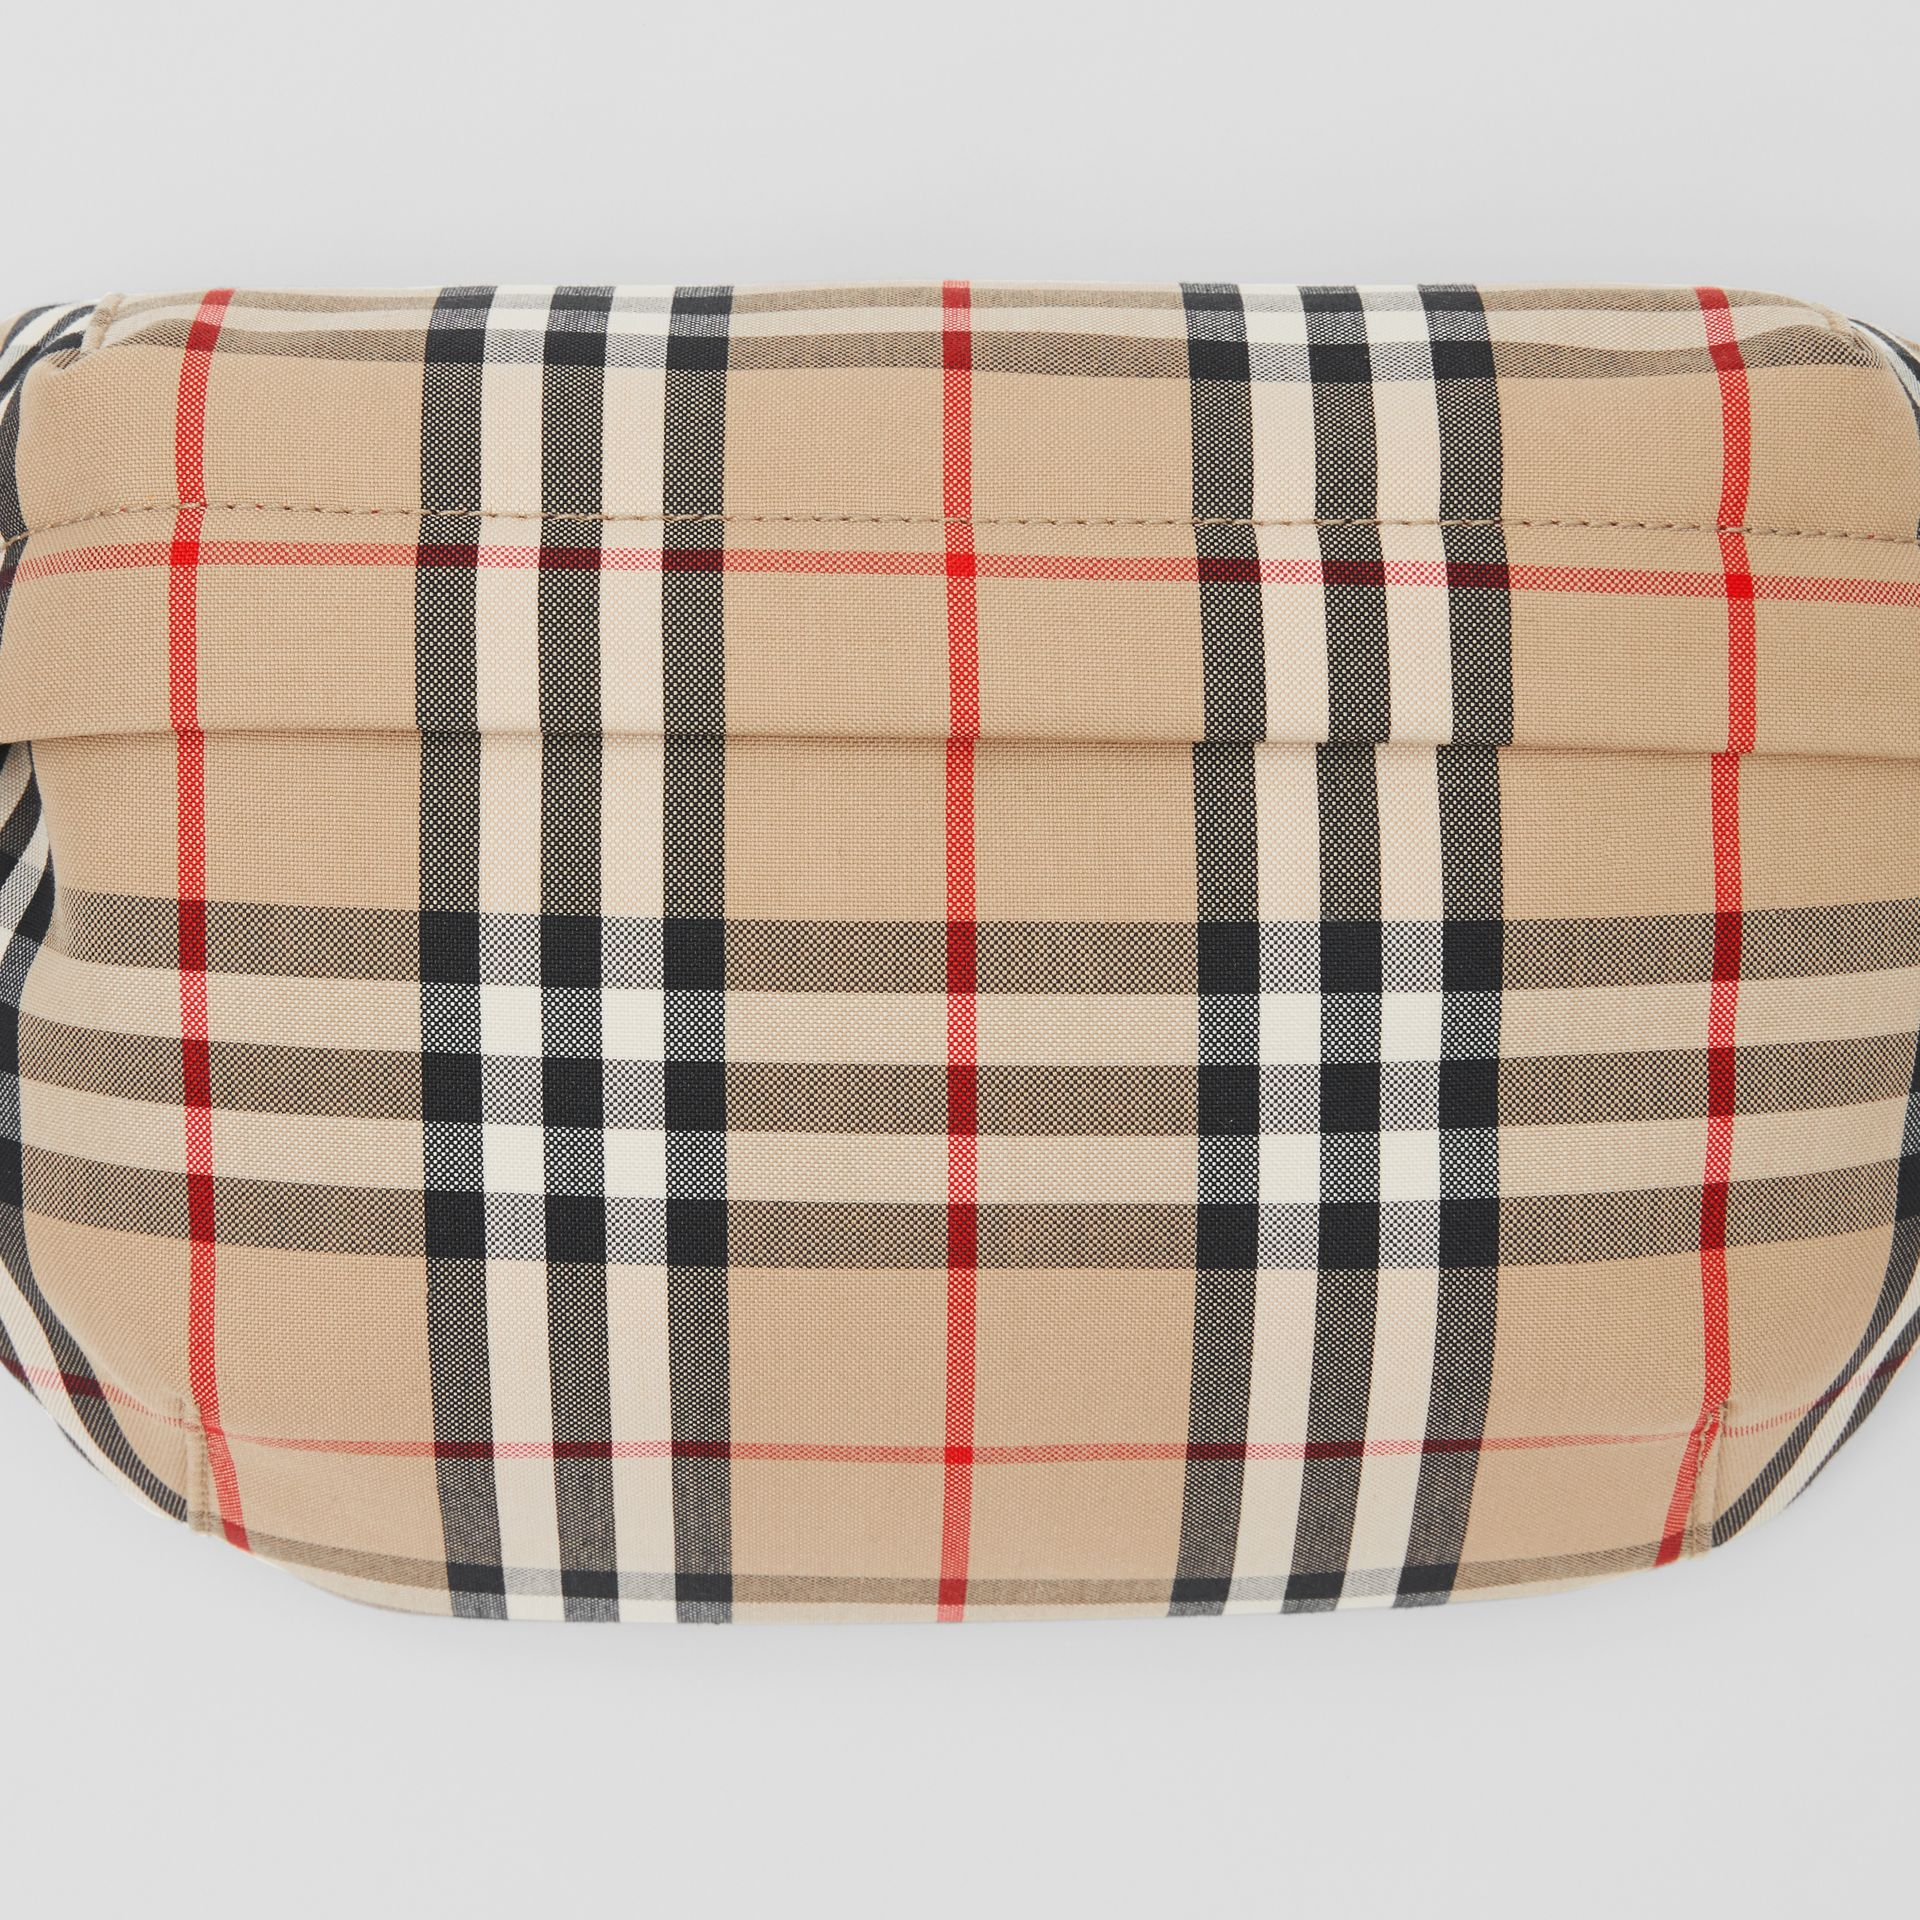 Medium Vintage Check Bonded Cotton Bum Bag in Archive Beige | Burberry United Kingdom - gallery image 1